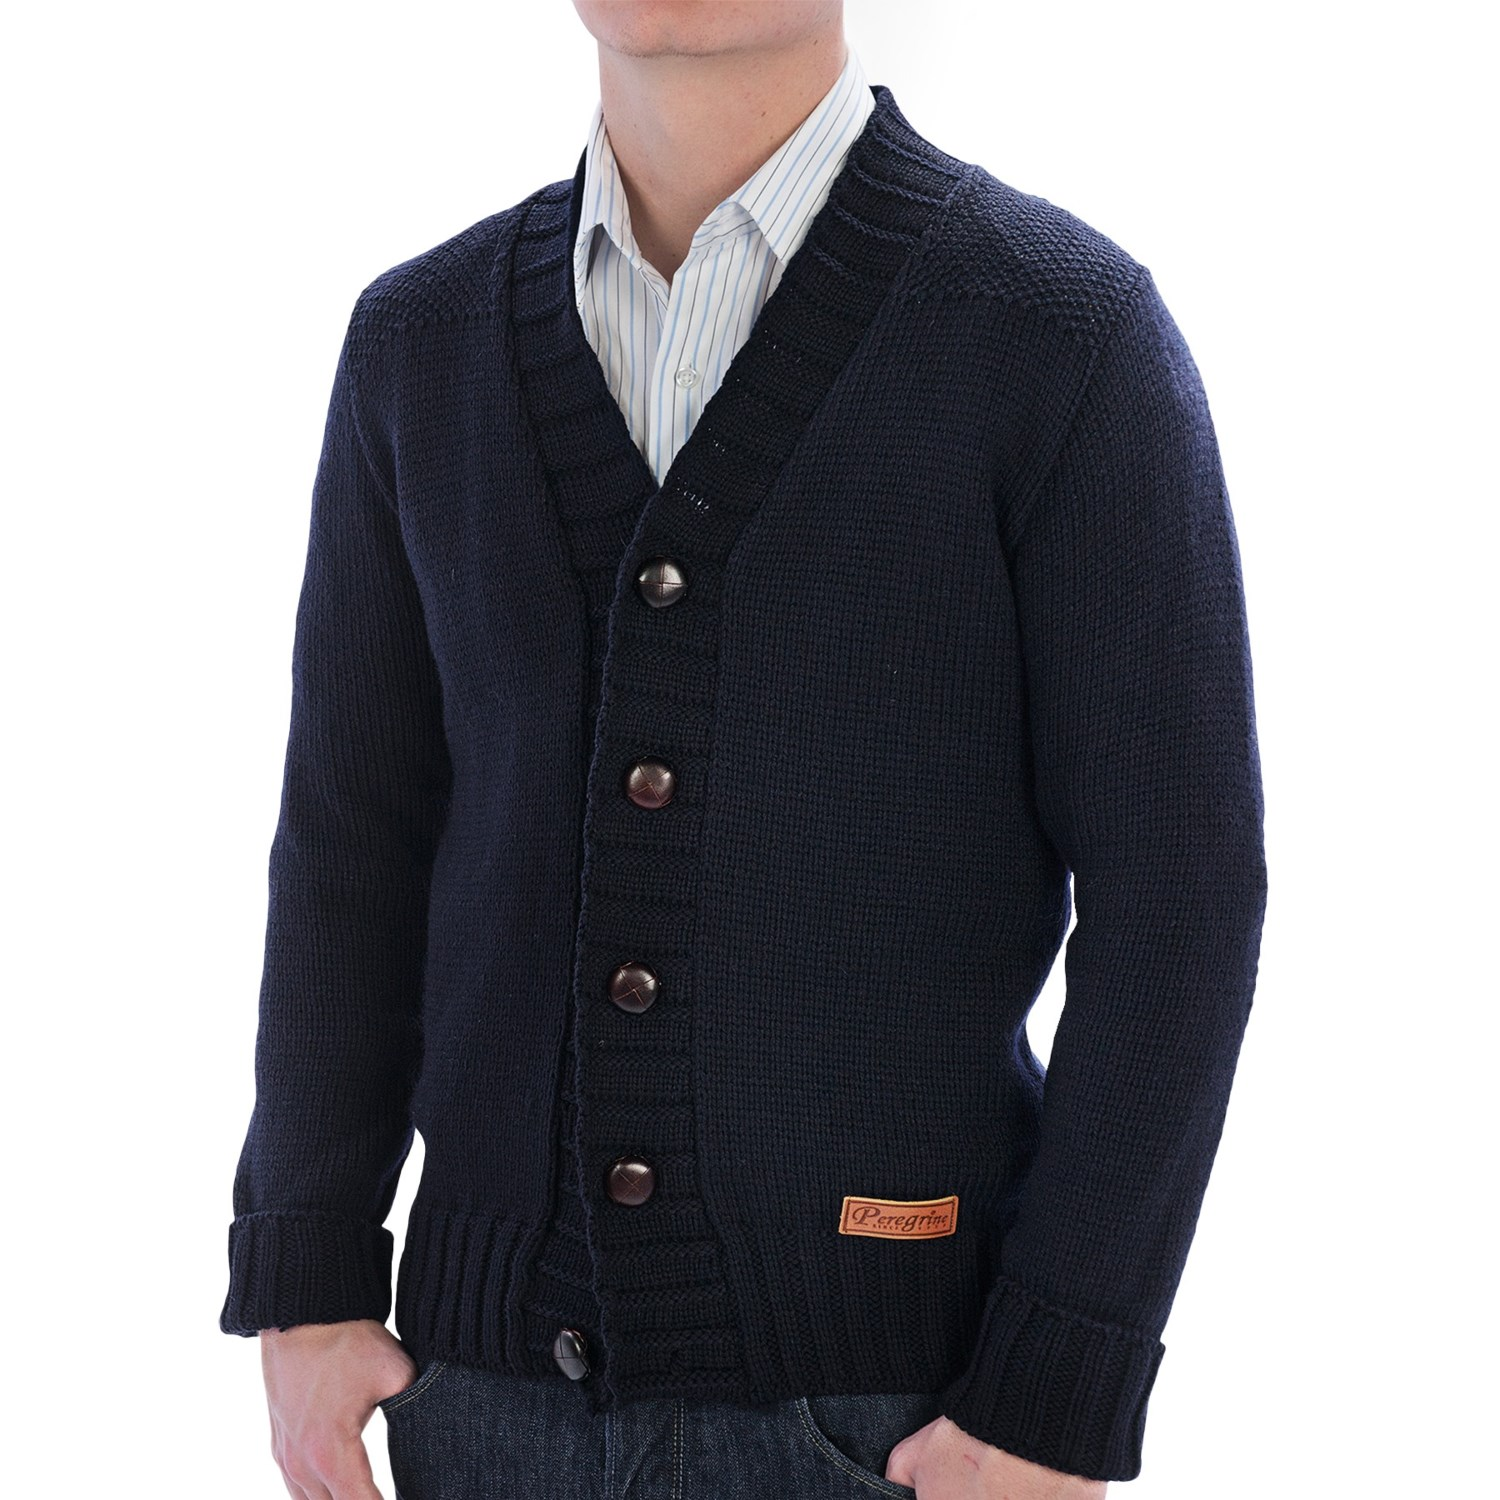 Find Women's Merino Wool Sweaters and Men's Merino Wool Sweaters when you shop at Macy's. Macy's Presents: The Edit- A curated mix of fashion and inspiration Check It Out. Free Shipping with $75 purchase + Free Store Pickup. Contiguous US. Polo Ralph Lauren Men's Merino Wool Cardigan.